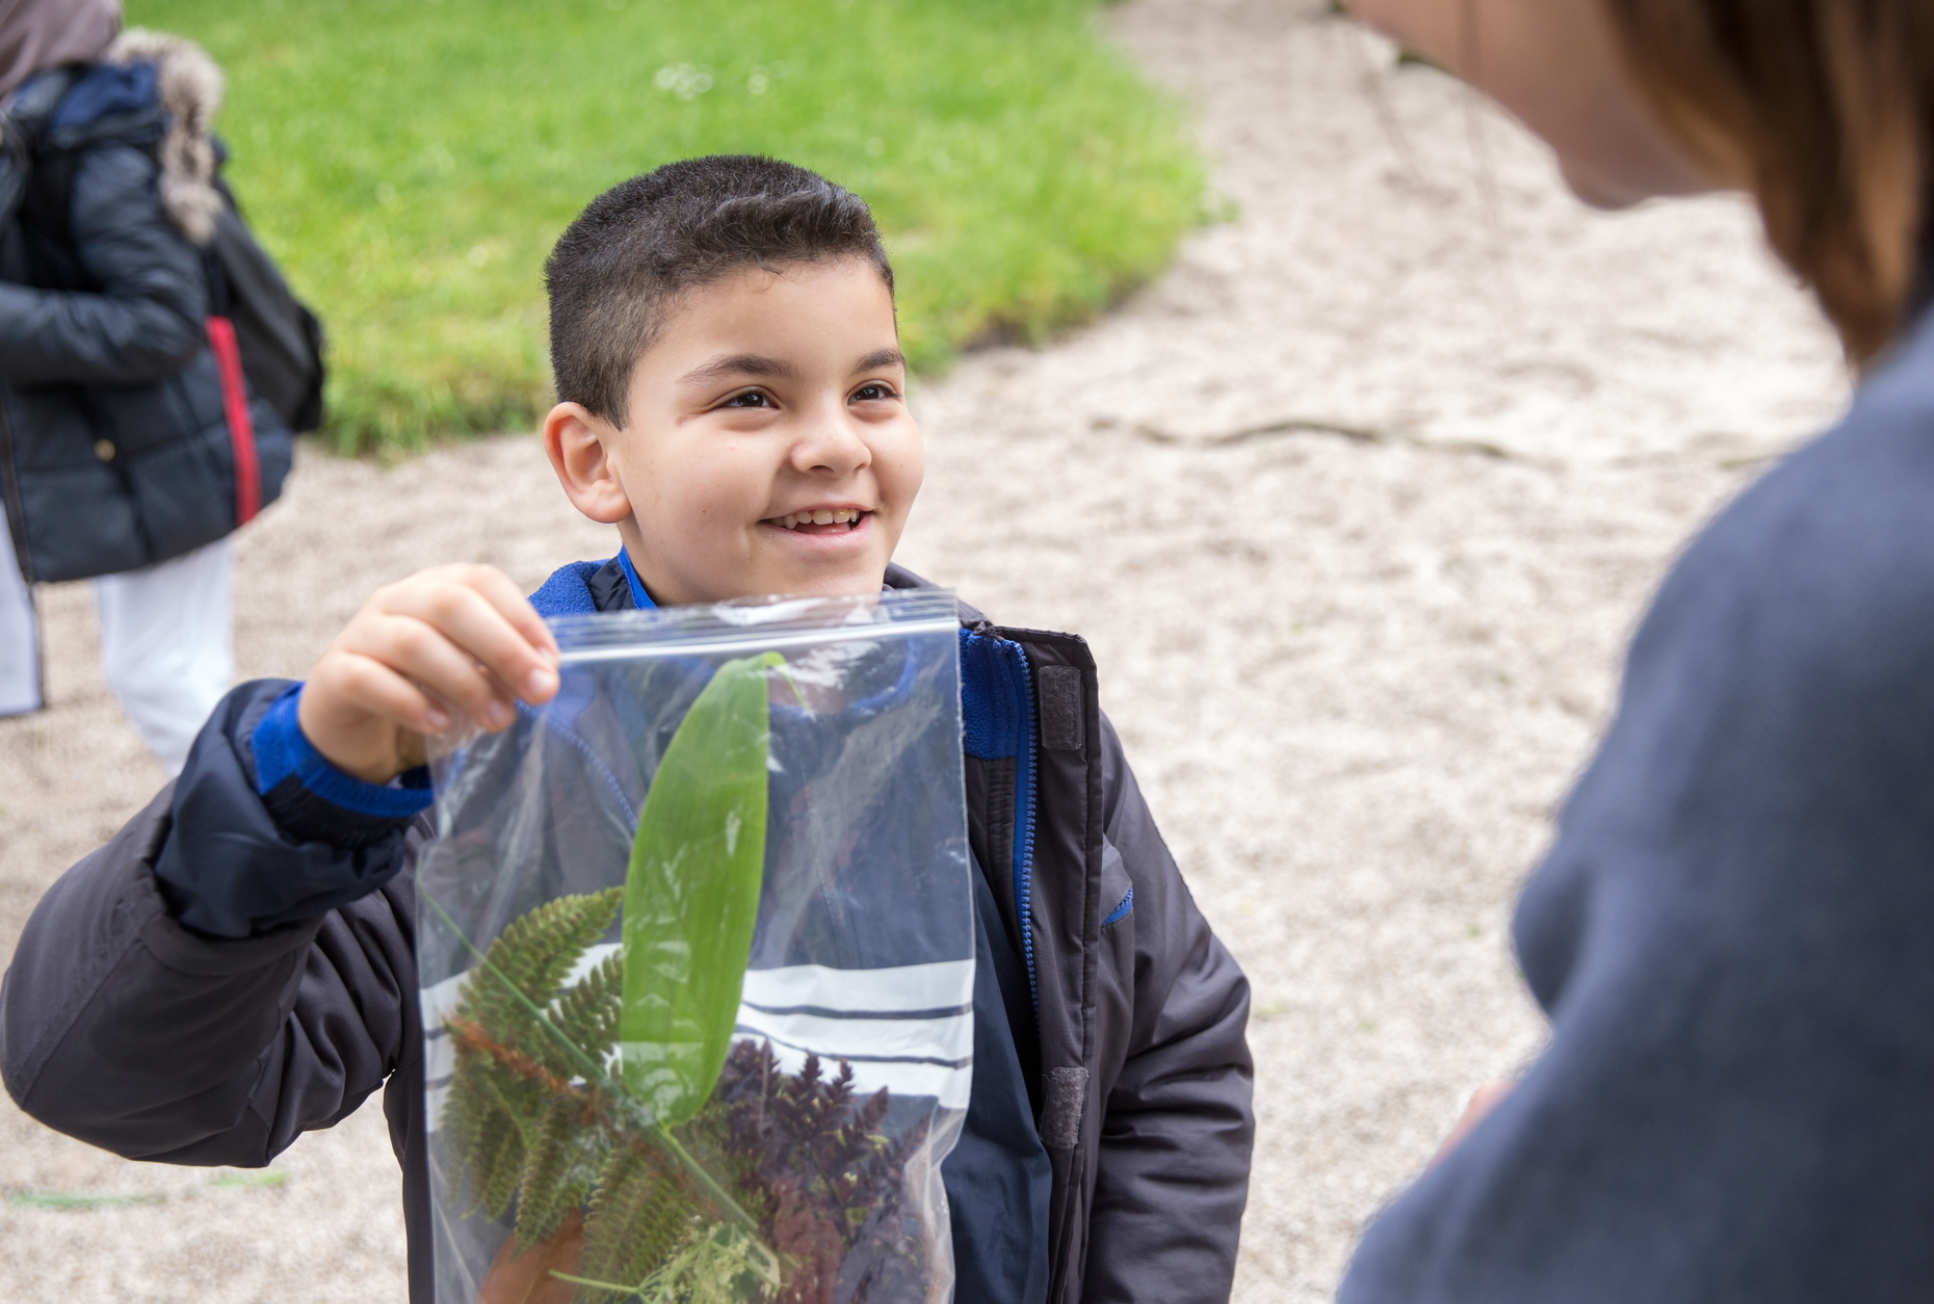 Child holding a bag of leaves